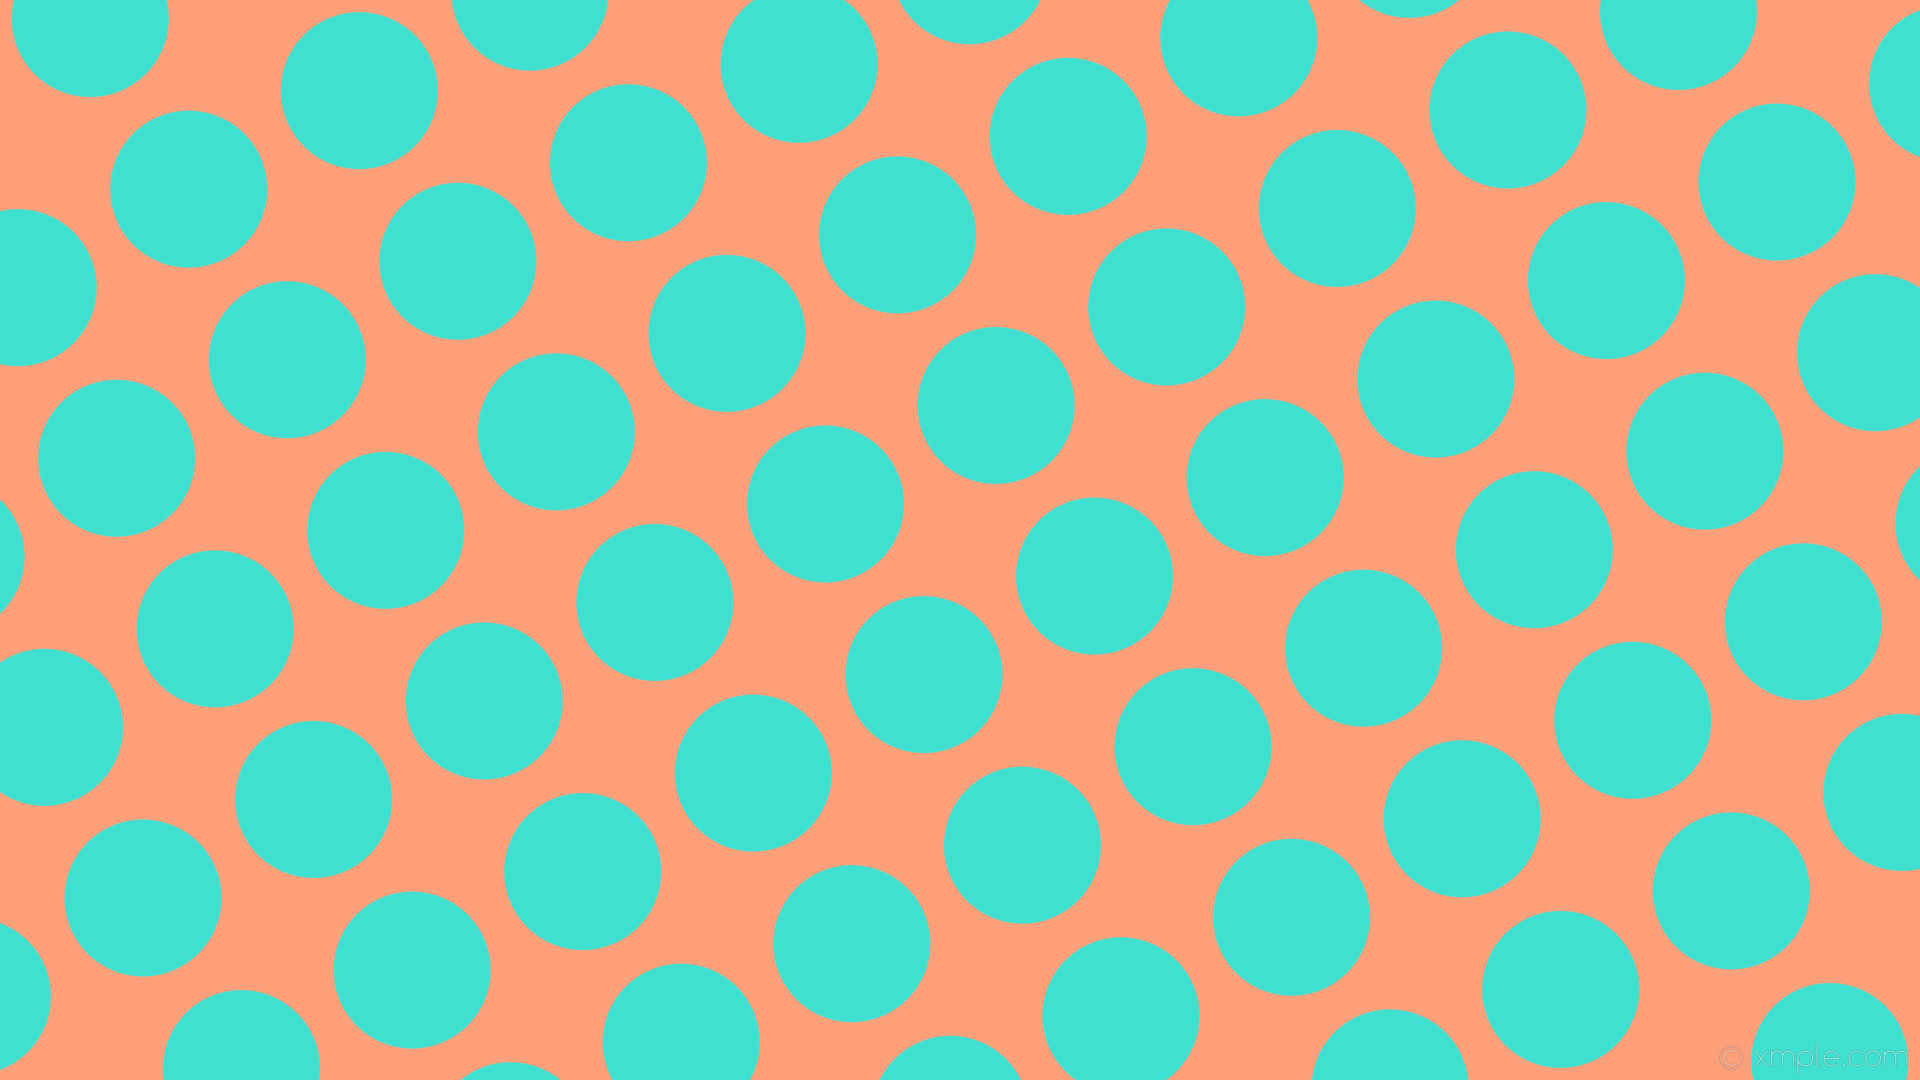 1920x1080 wallpaper spots red polka dots blue light salmon turquoise #ffa07a #40e0d0  210° 157px